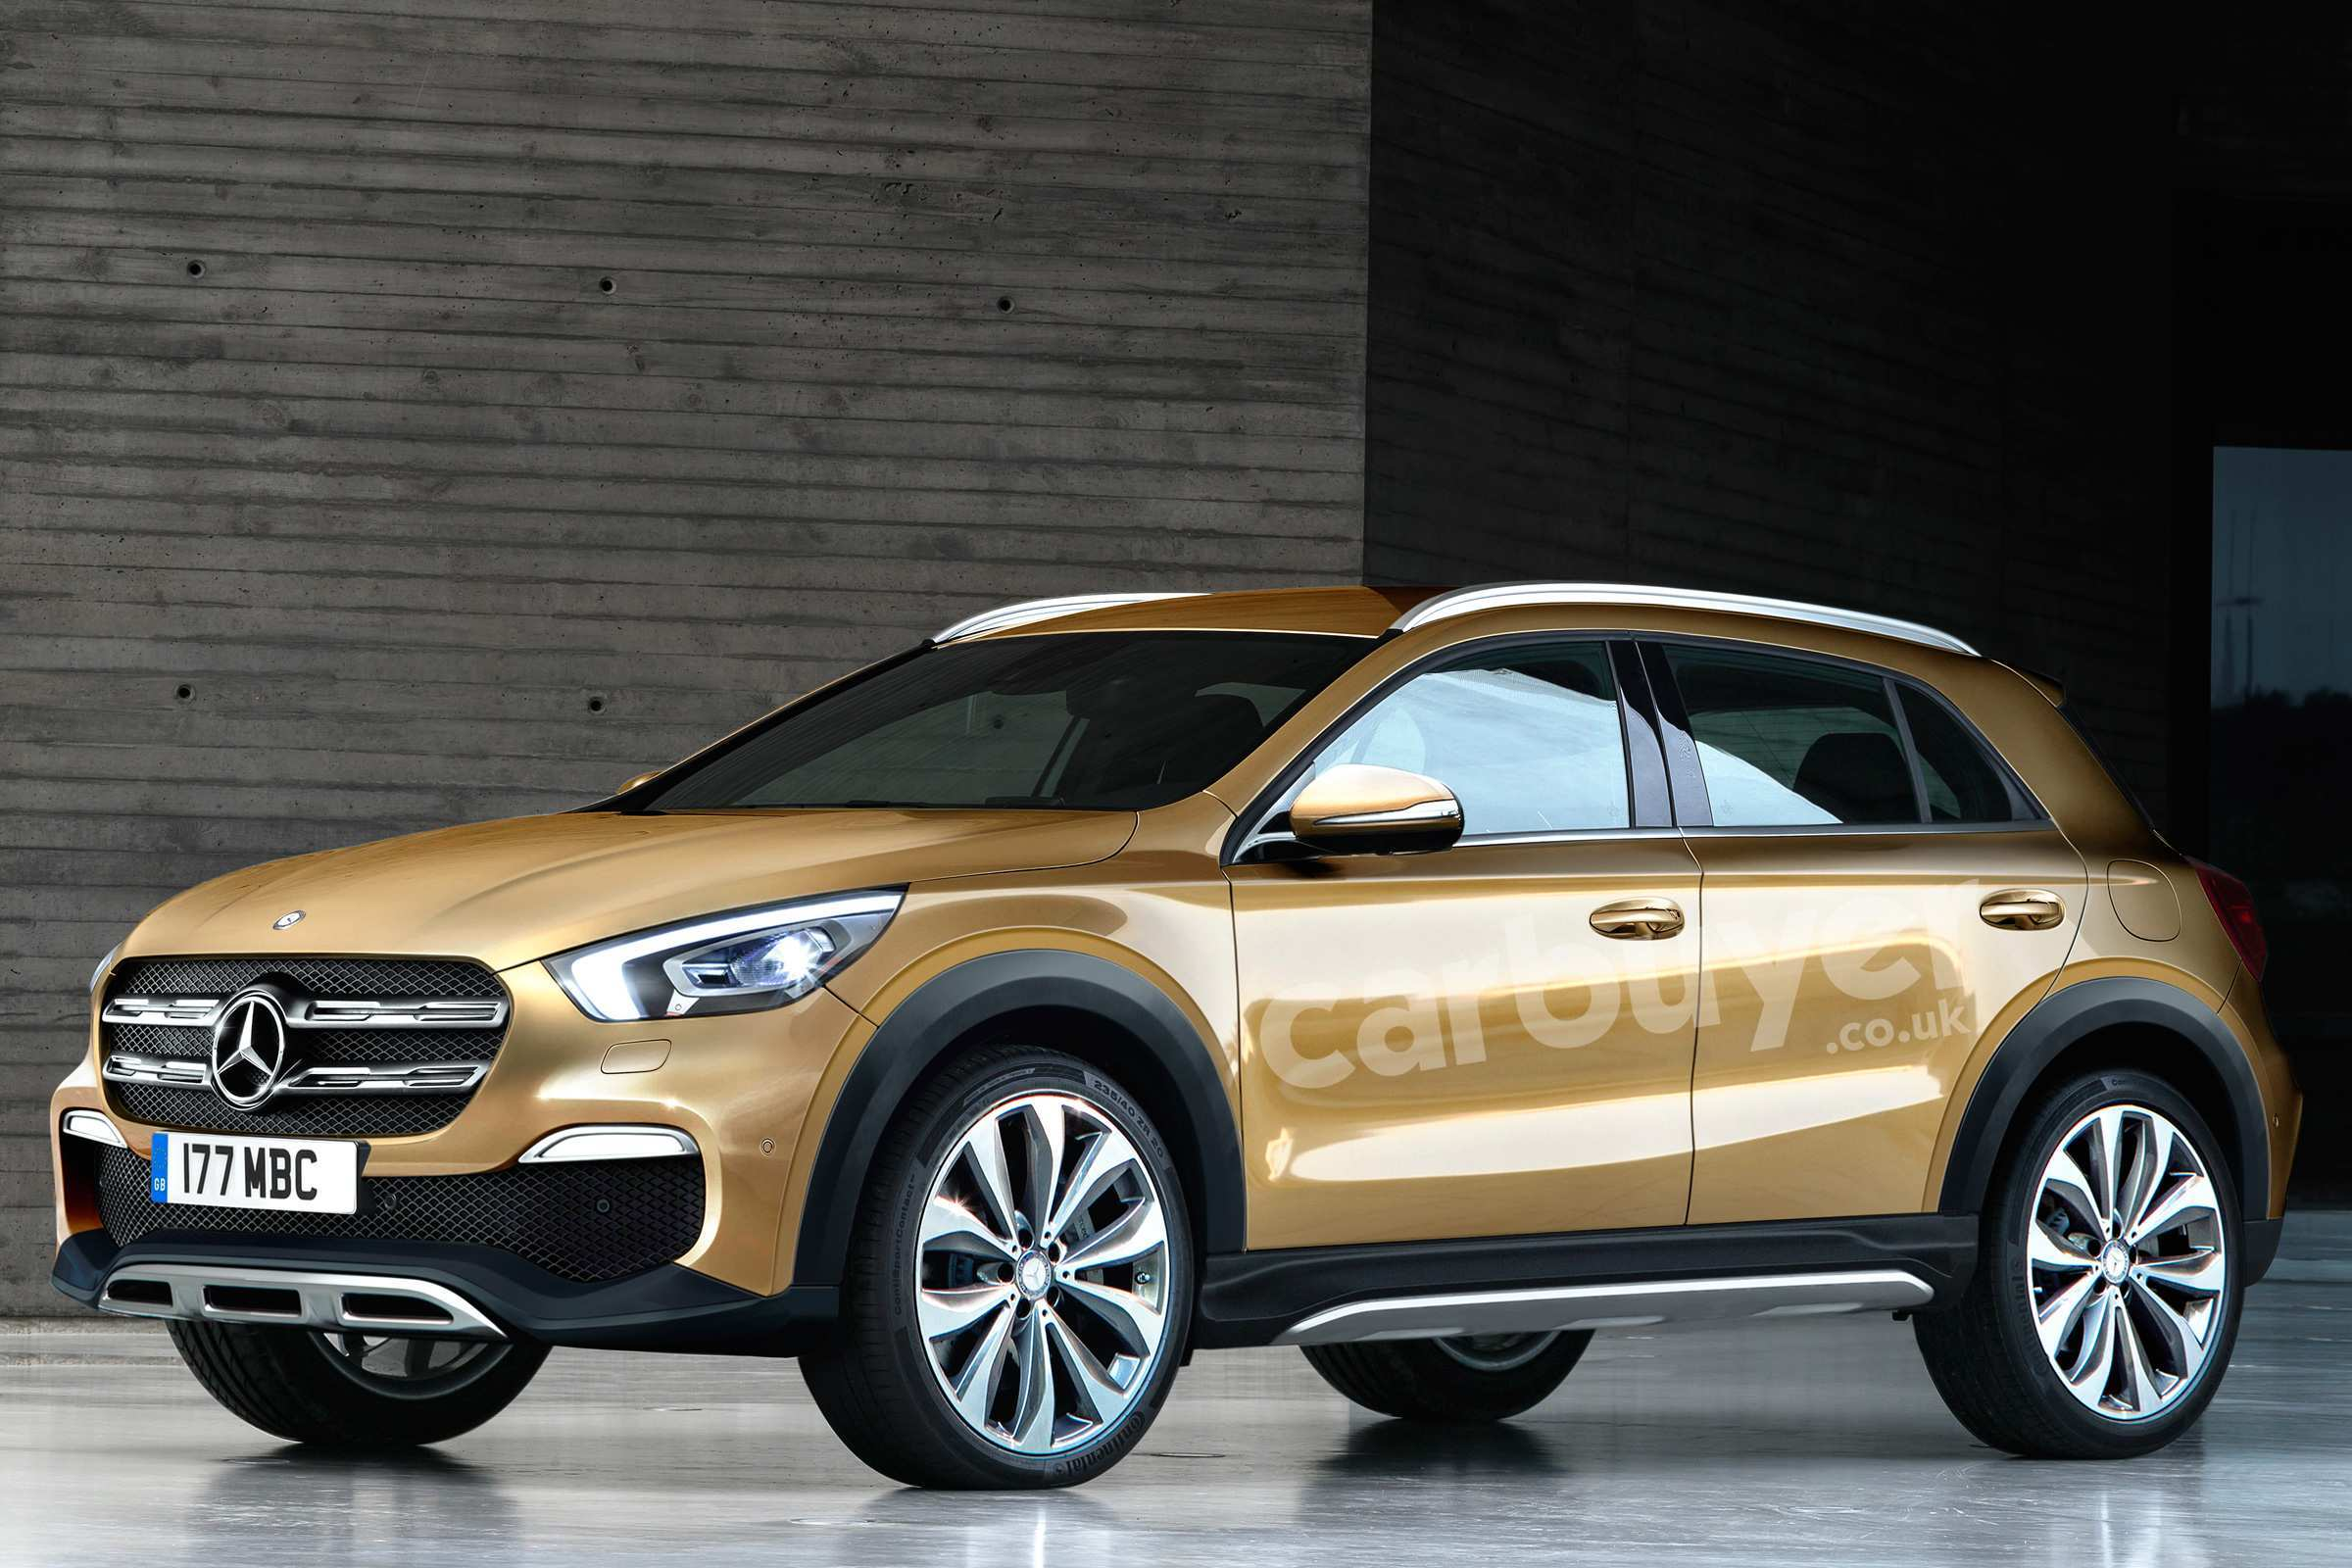 85 The Mercedes 2019 Gla Exterior with Mercedes 2019 Gla